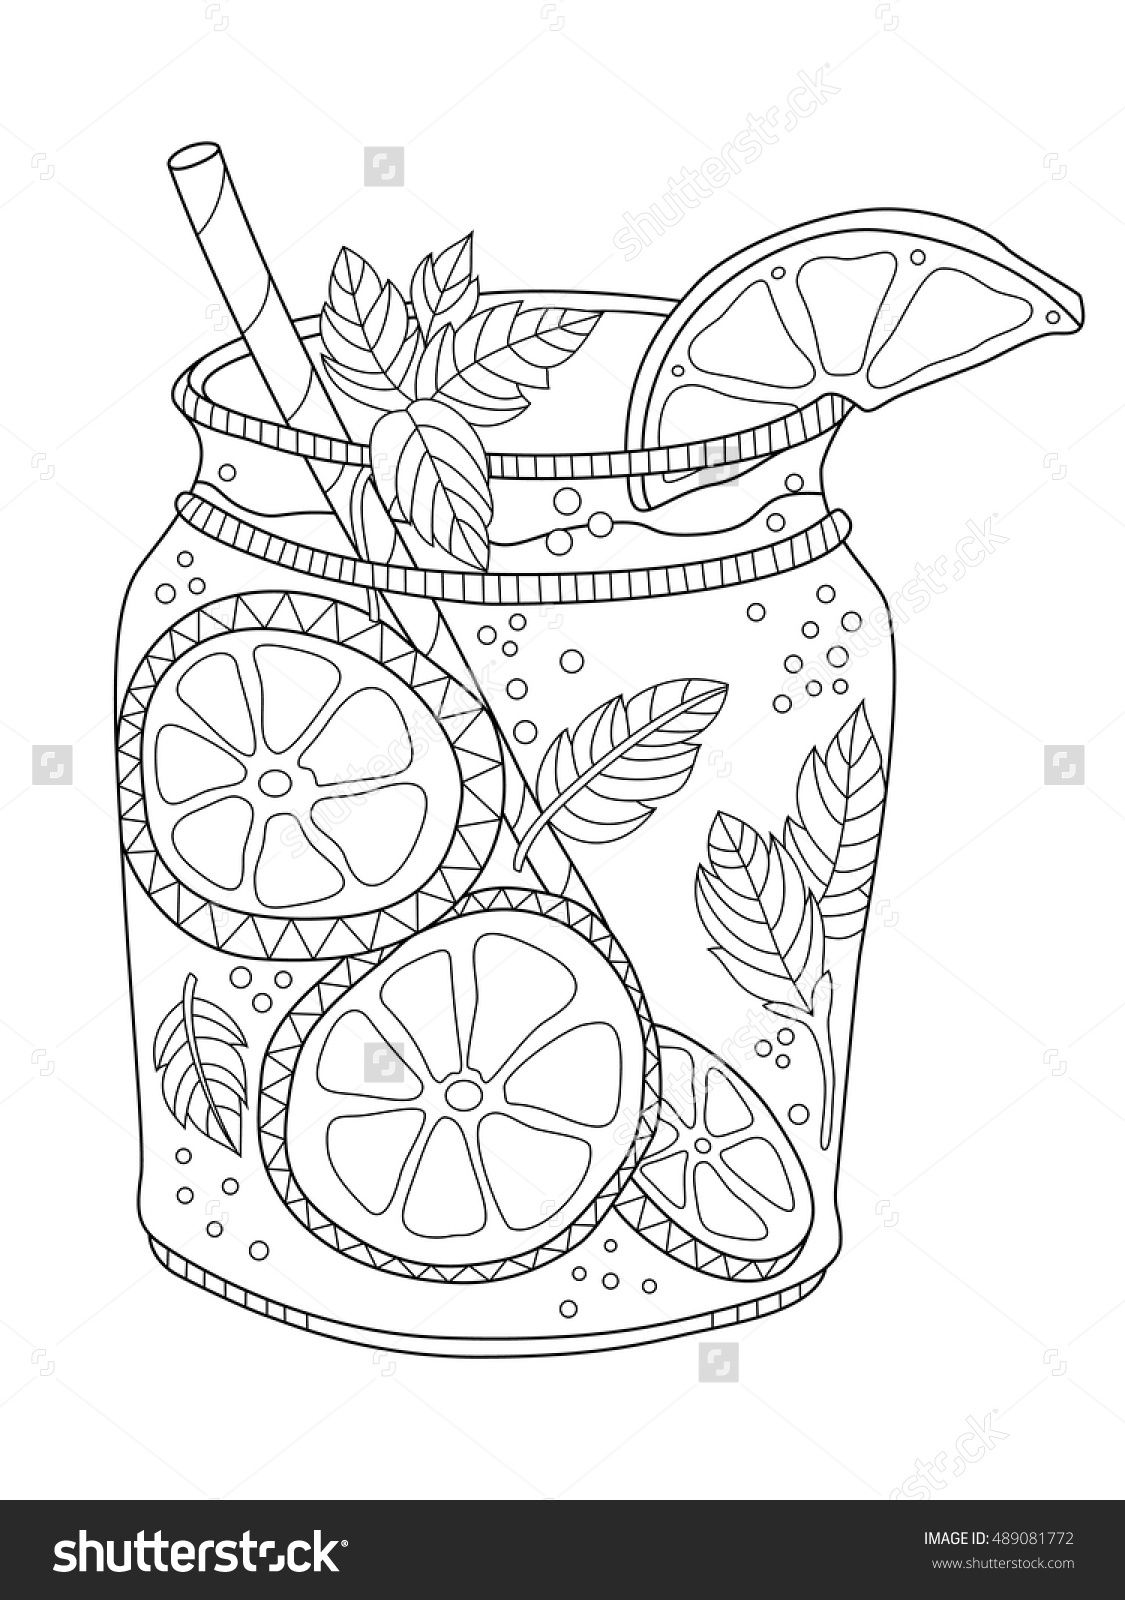 Stock Vector Lemonade In A Jar Coloring Page For Adults In